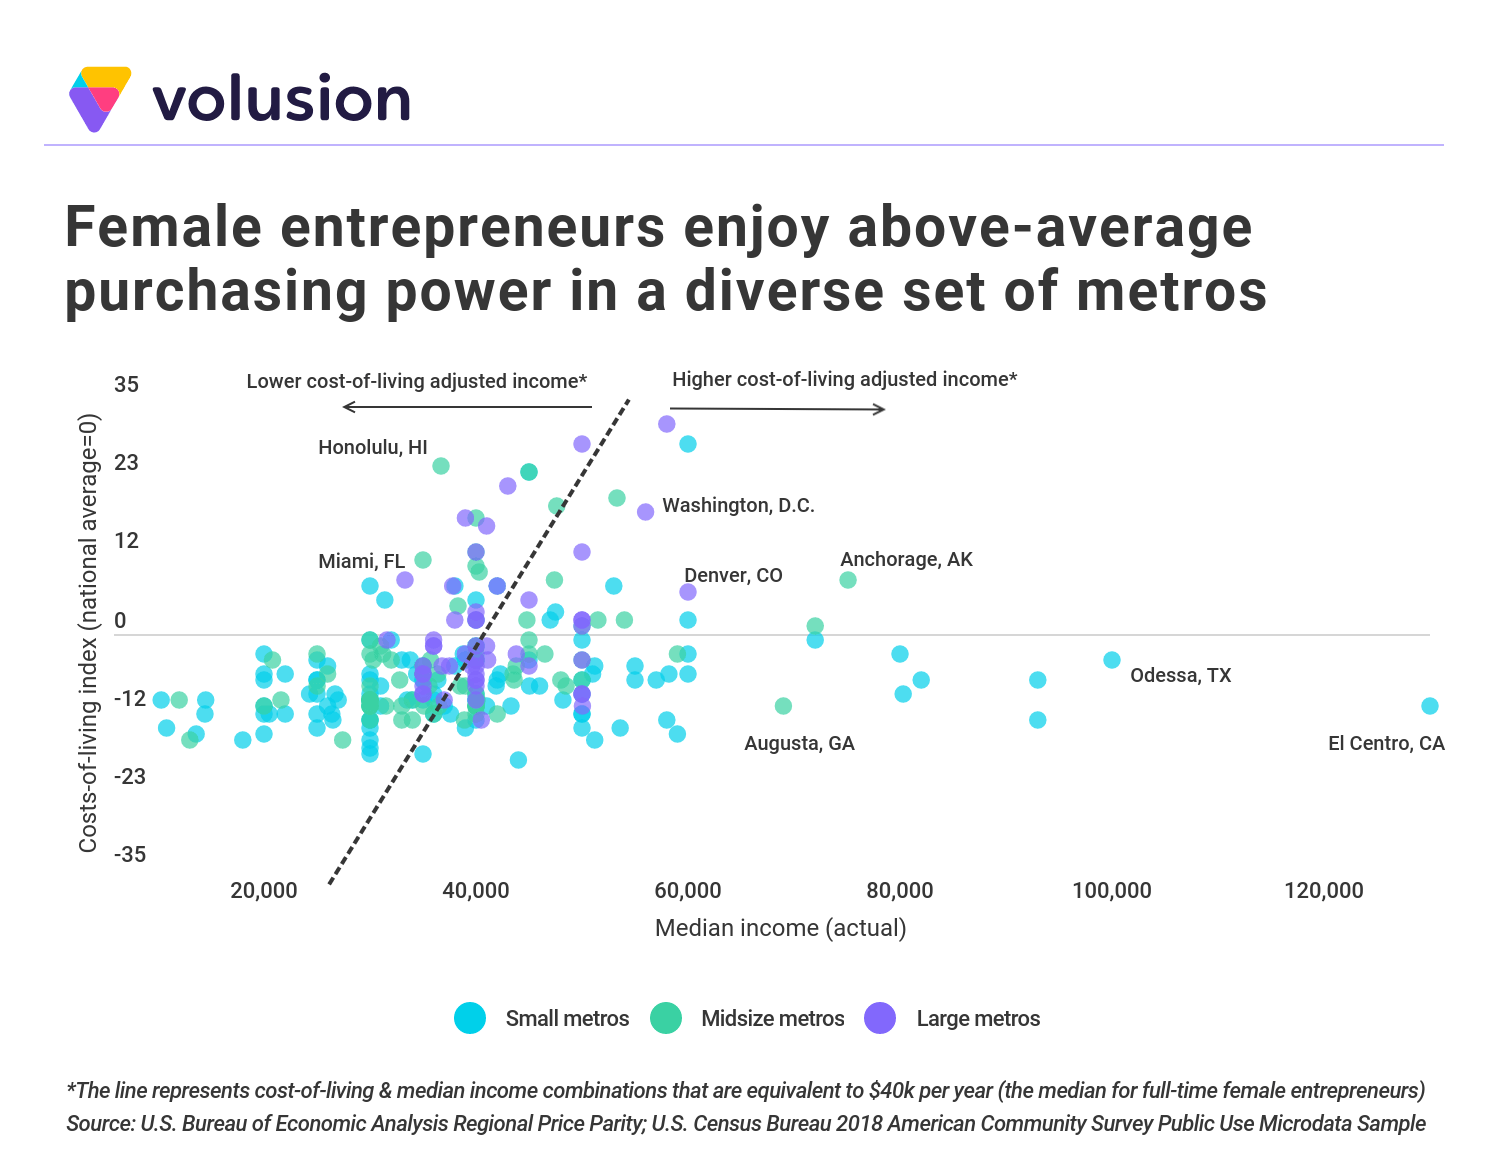 Chart illustrating that female entrepreneurs enjoy above-average purchasing power in a diverse set of metros.